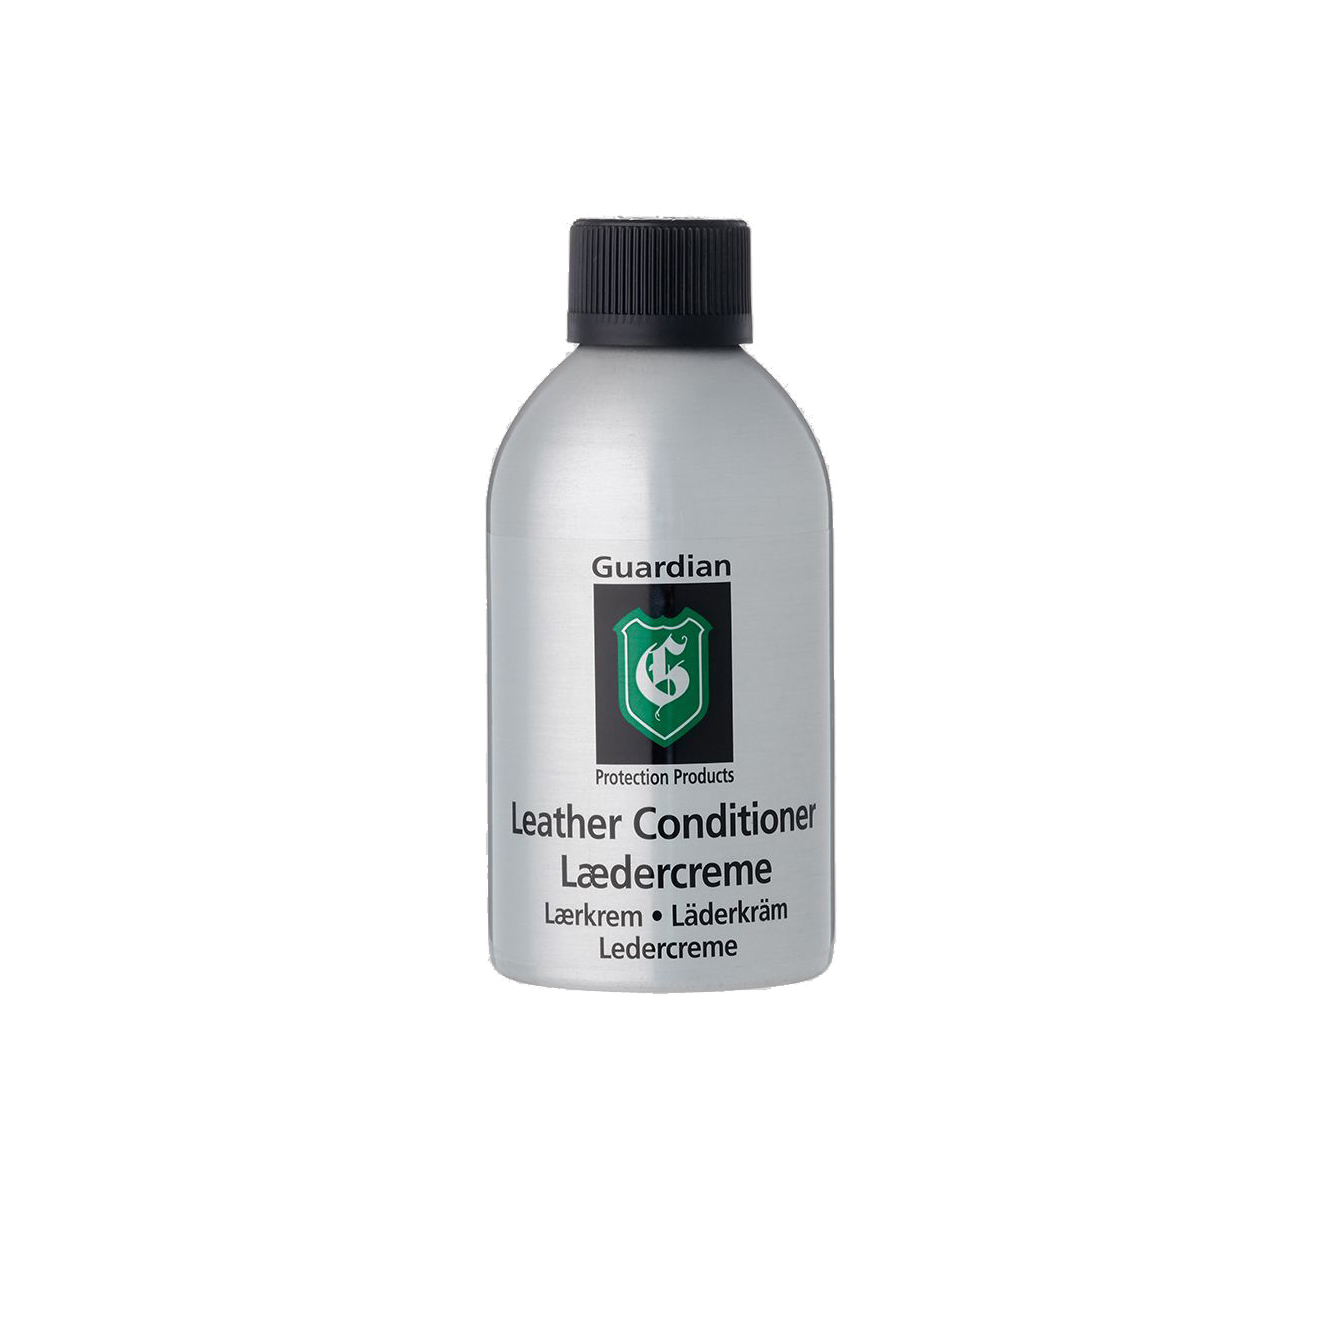 Guardian Leather Conditioner